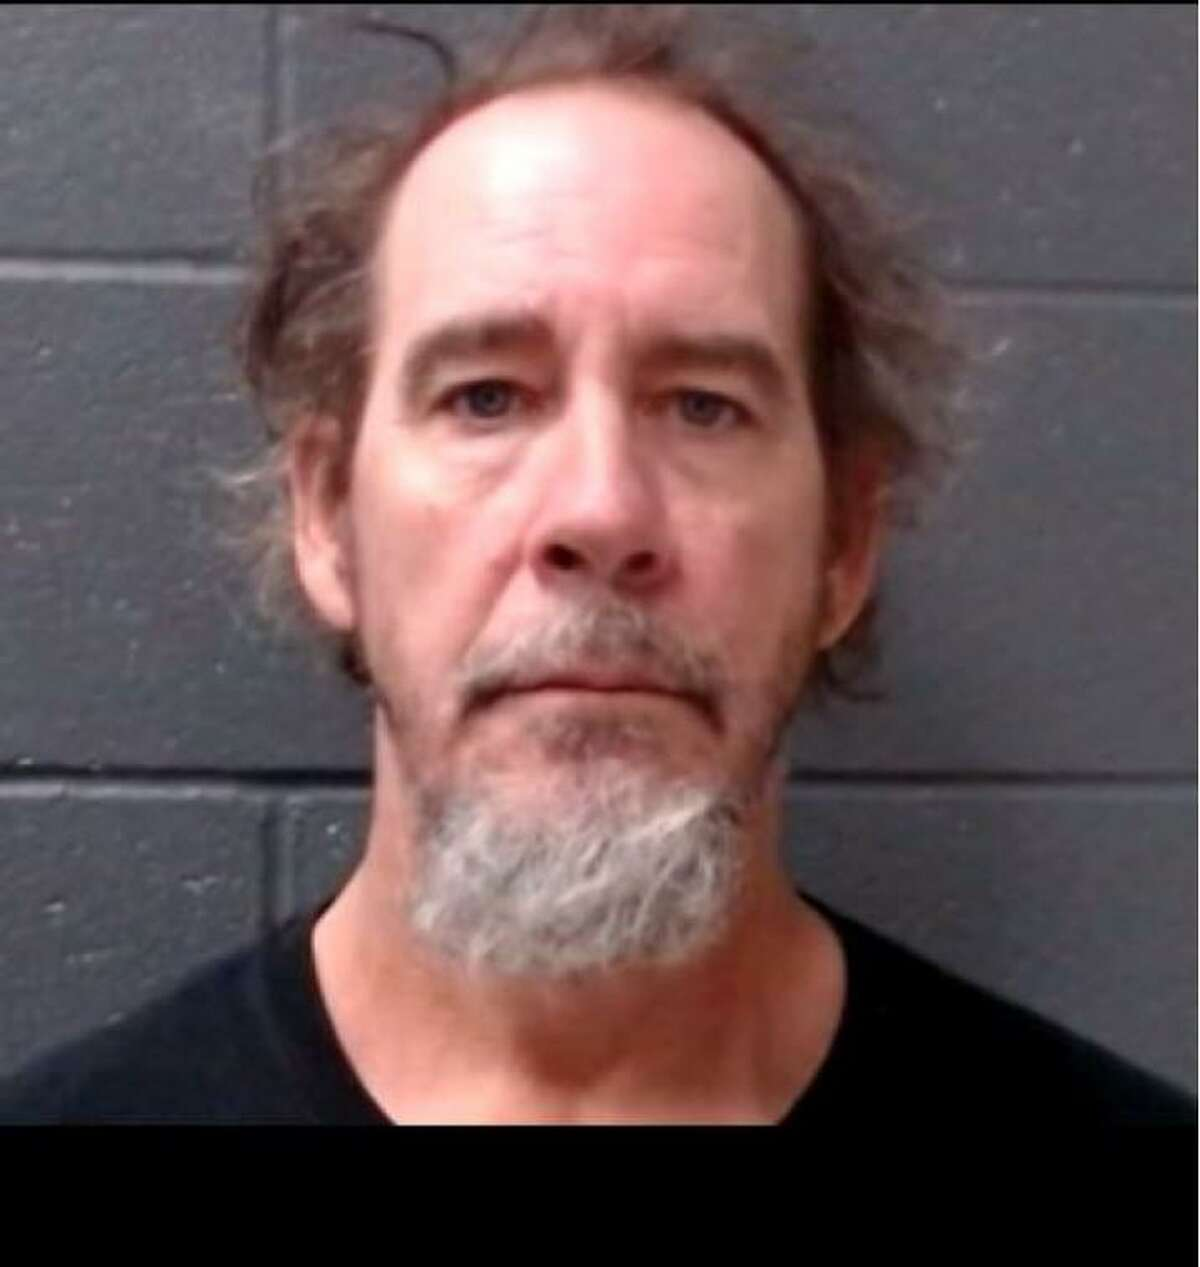 Tracey Keith Loy was arrested and charged with murder in the 1986 death of Charles Robert Hardin.